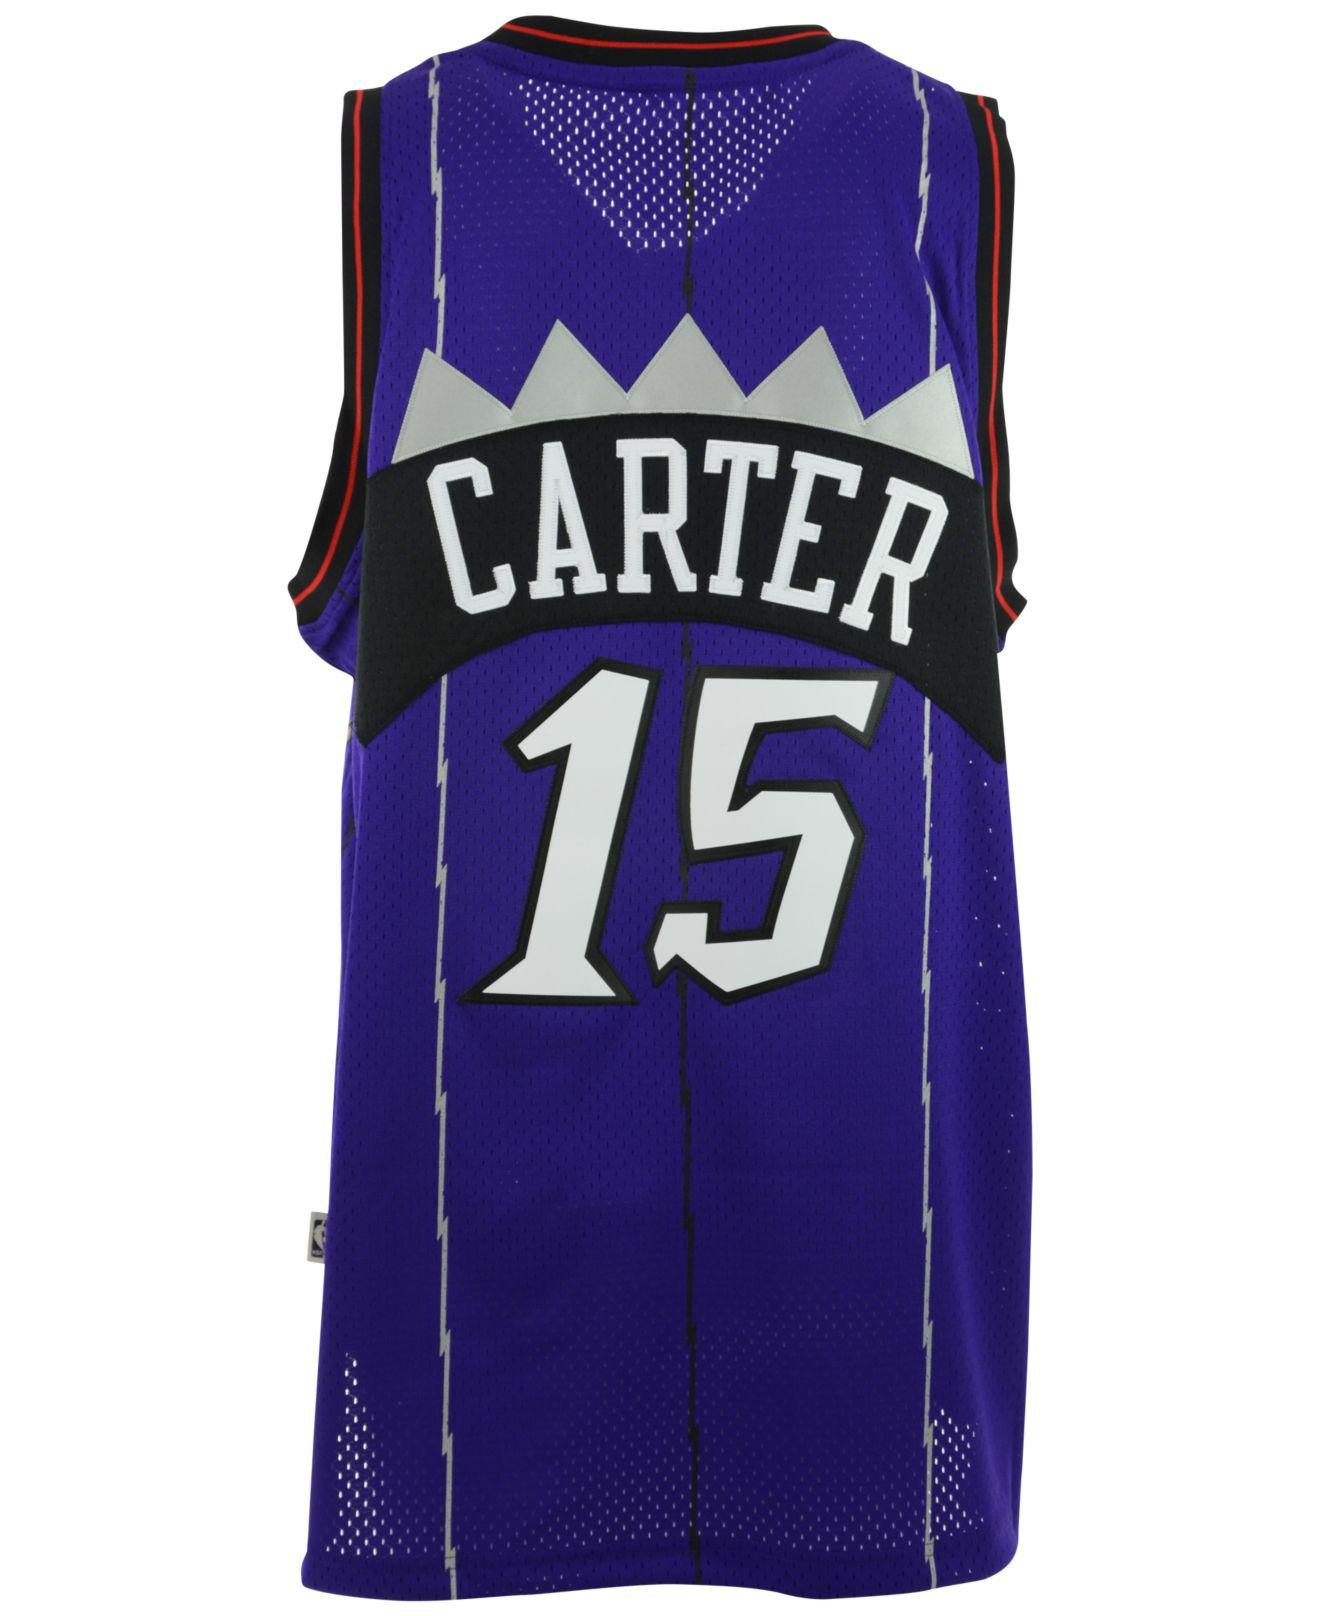 Lyst - adidas Men s Vince Carter Toronto Raptors Swingman Jersey in ... cd290c3f5